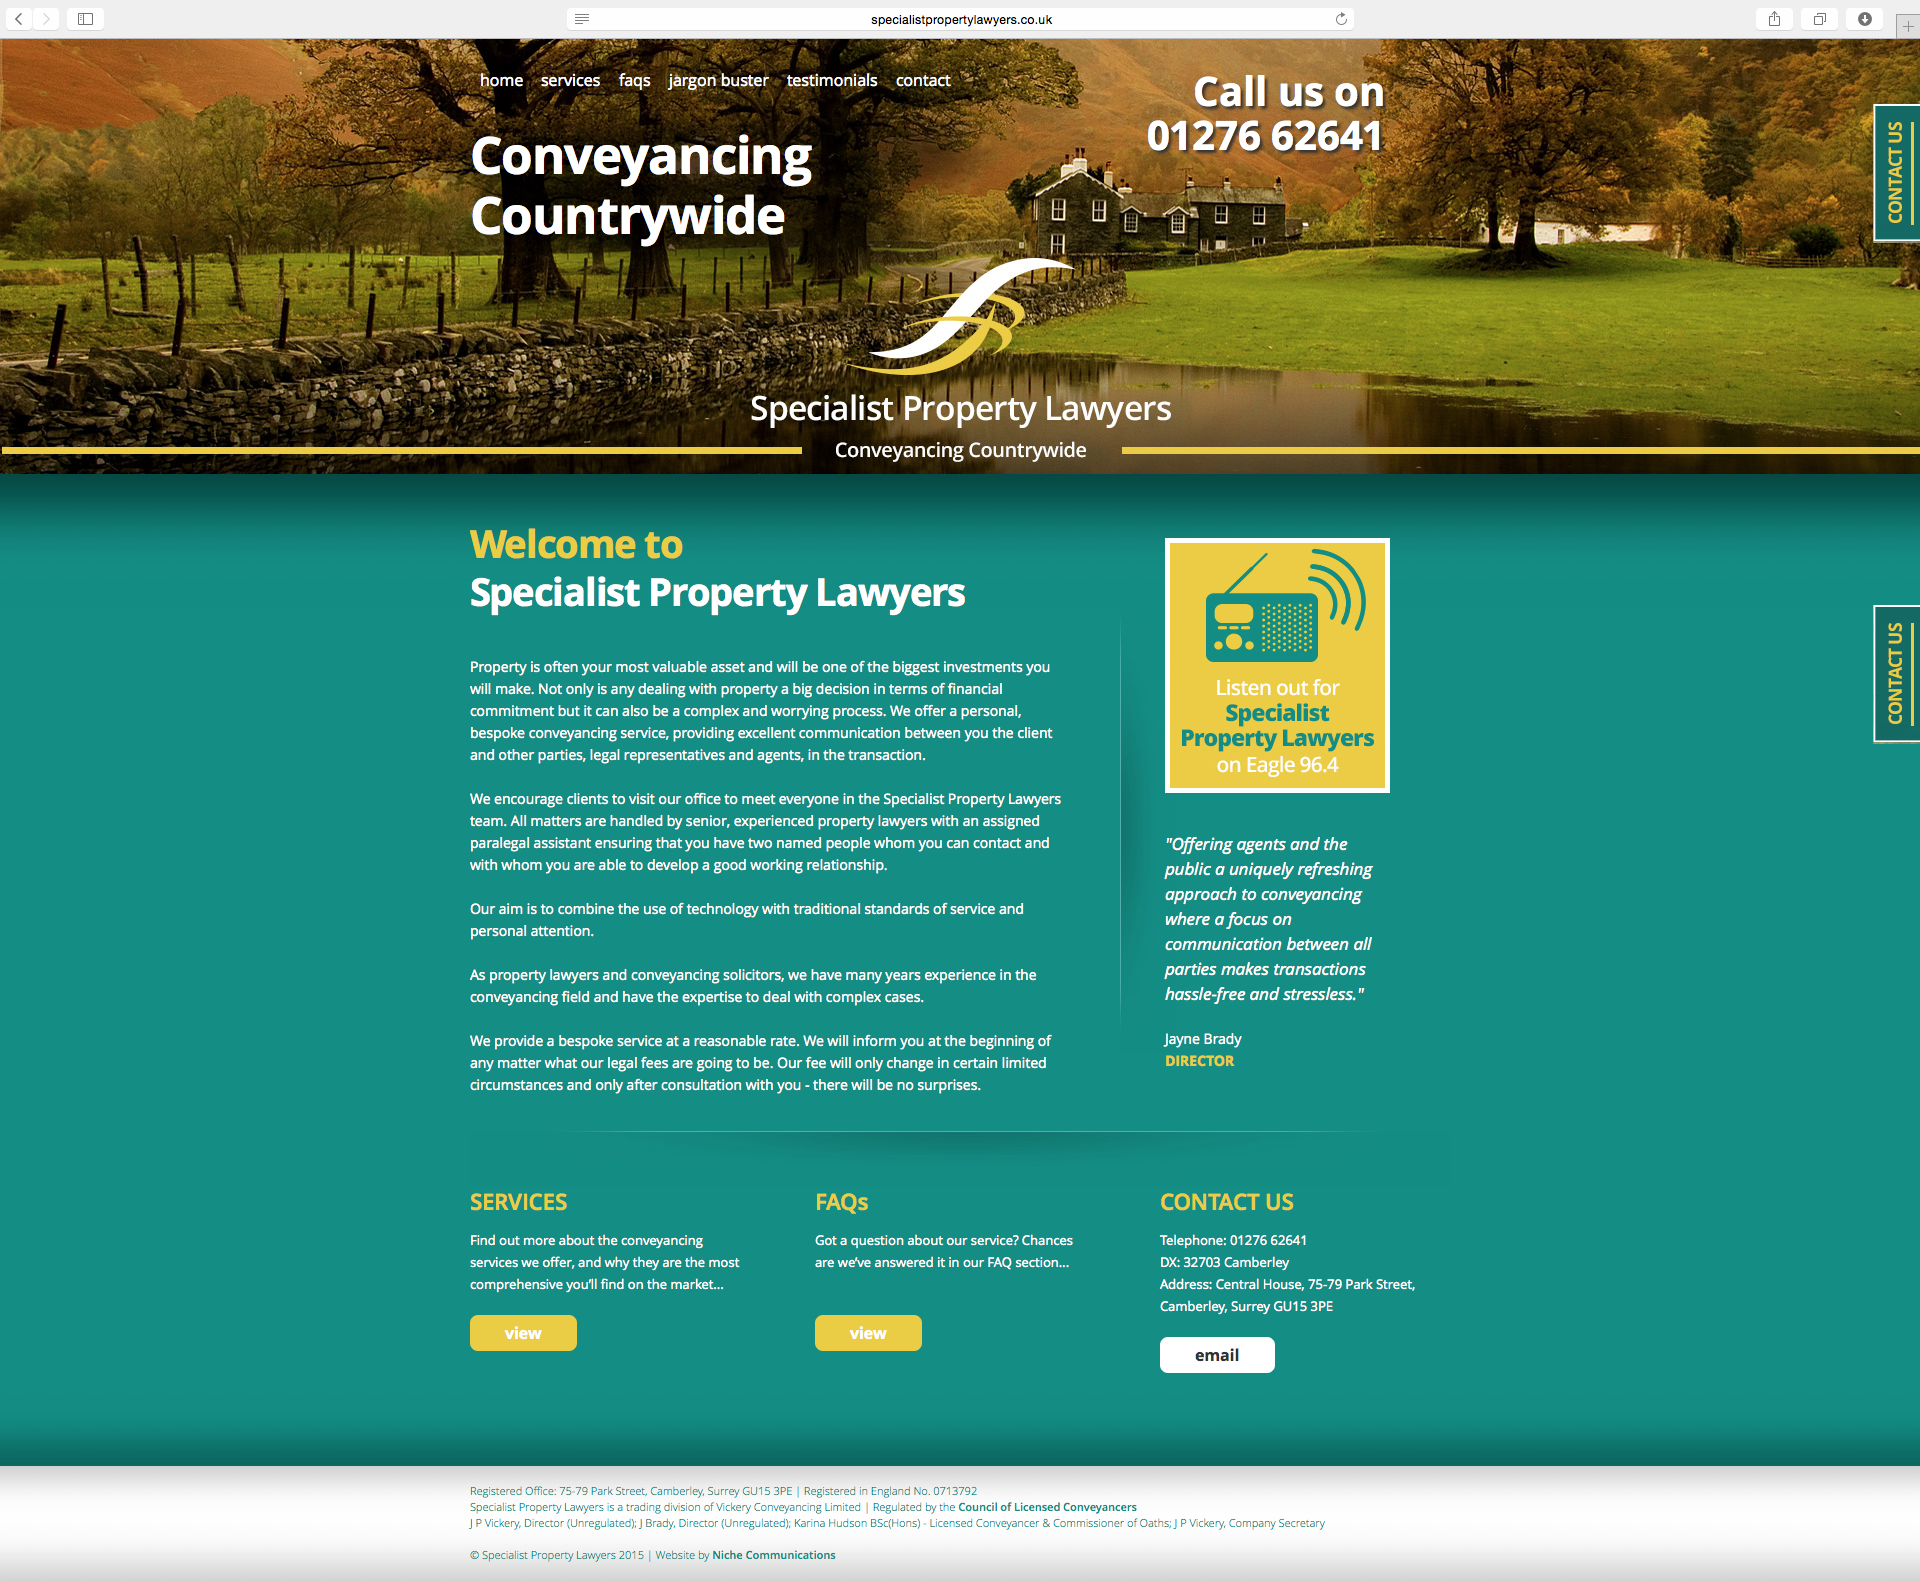 Specialist Property Lawyers Website full Homepage view